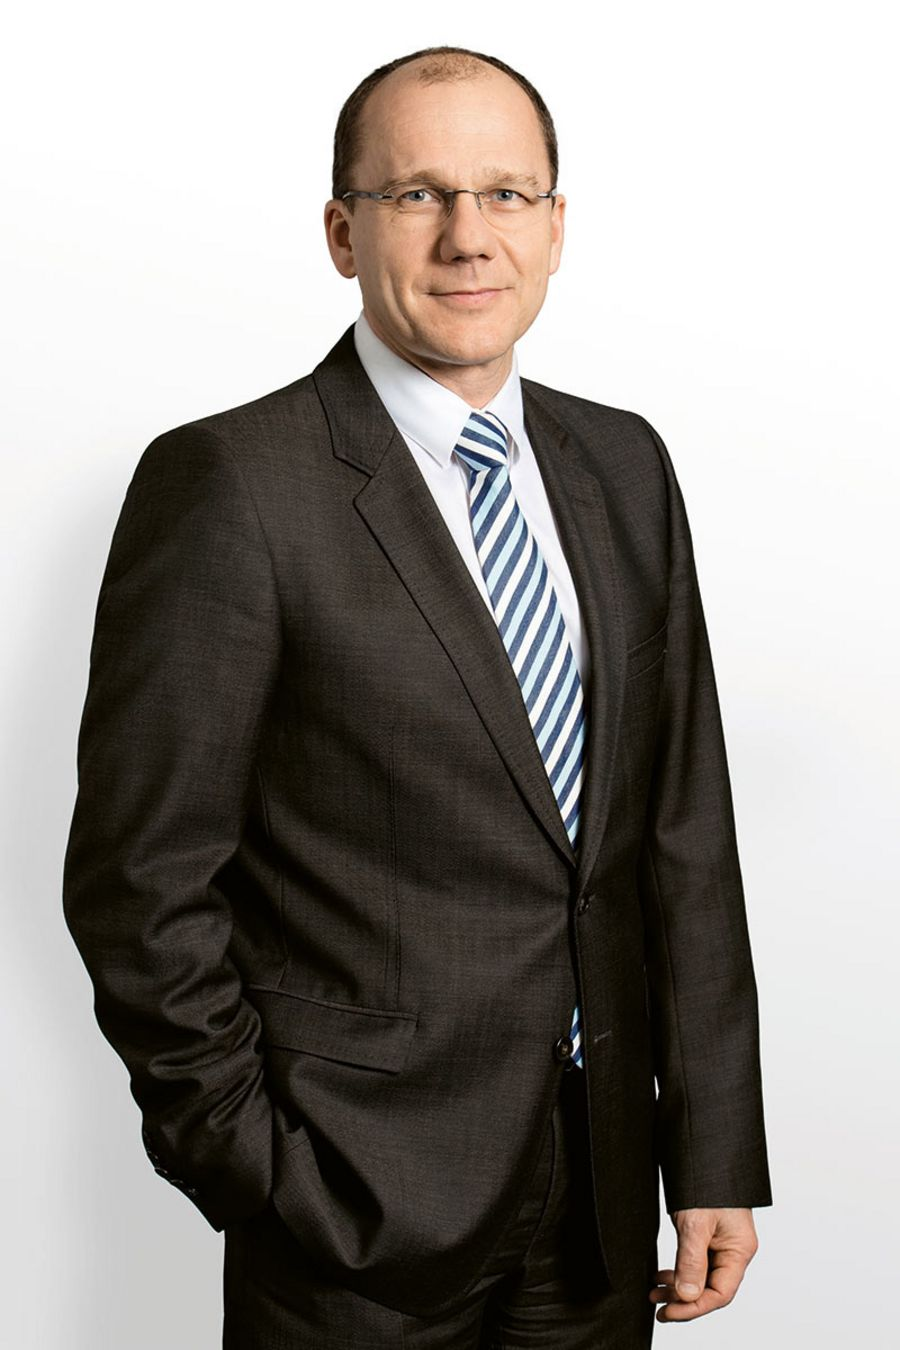 Philippe Durr, Director of Romande Energie Commerce SA